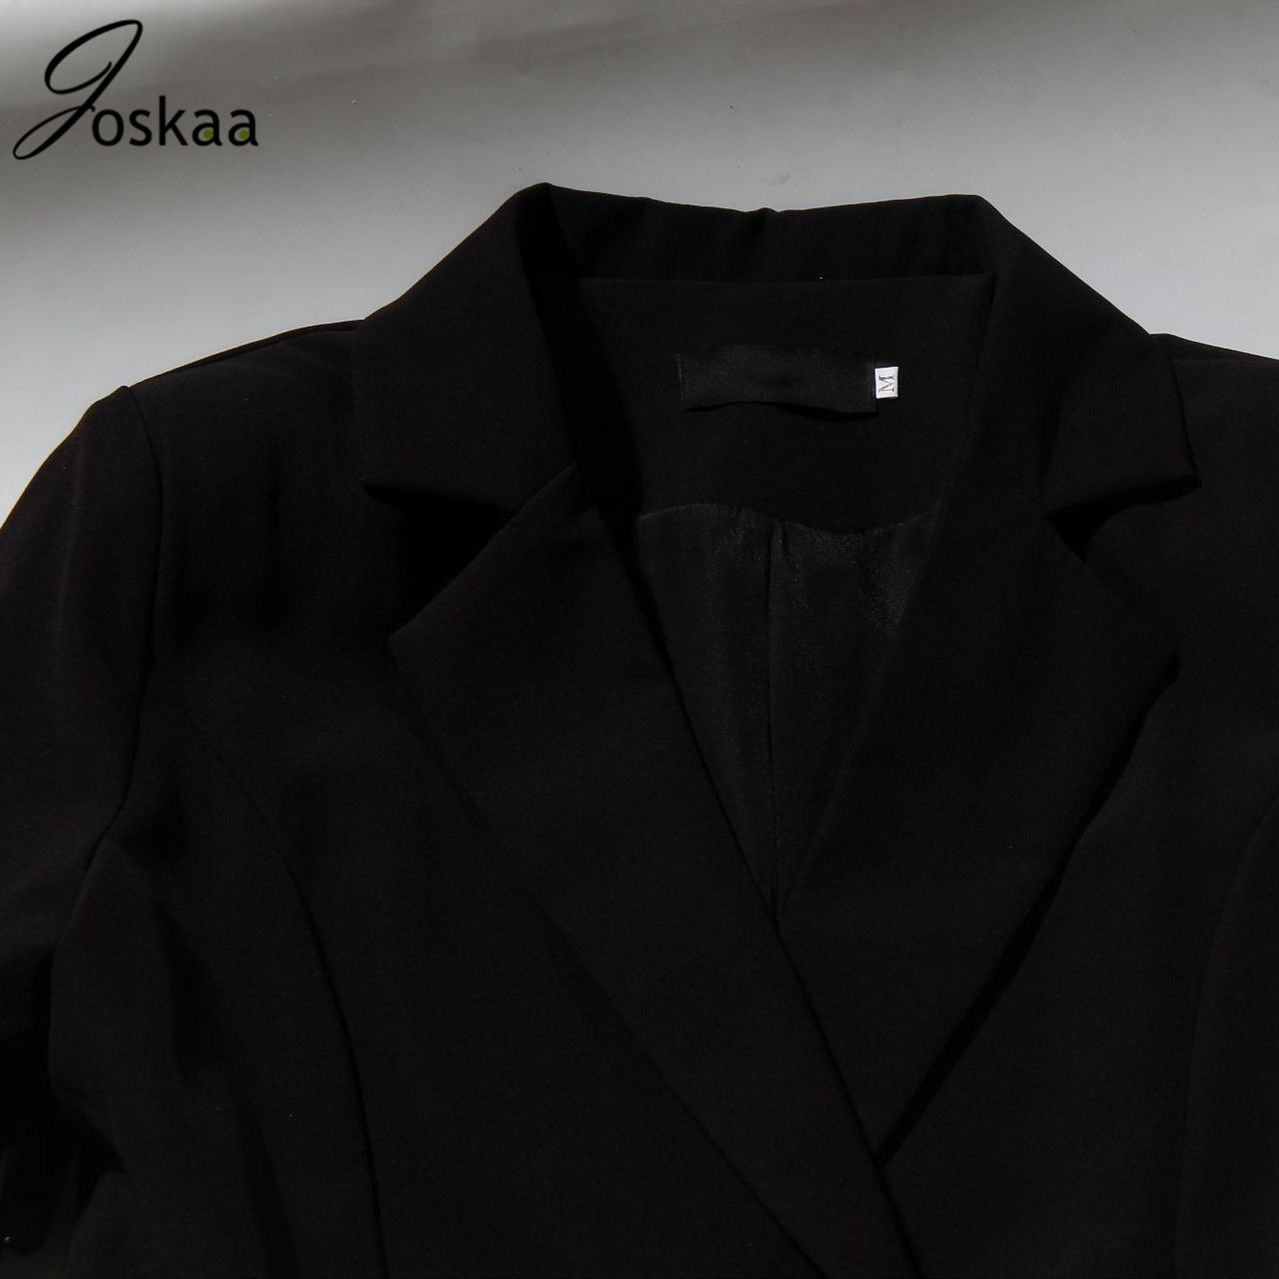 Joskaa Women Spring Blazer Mesh Diamond Black Long Sleeve Blazers Jackets Vintage Elegant Fashion Club Casual Sexy Long Outwear